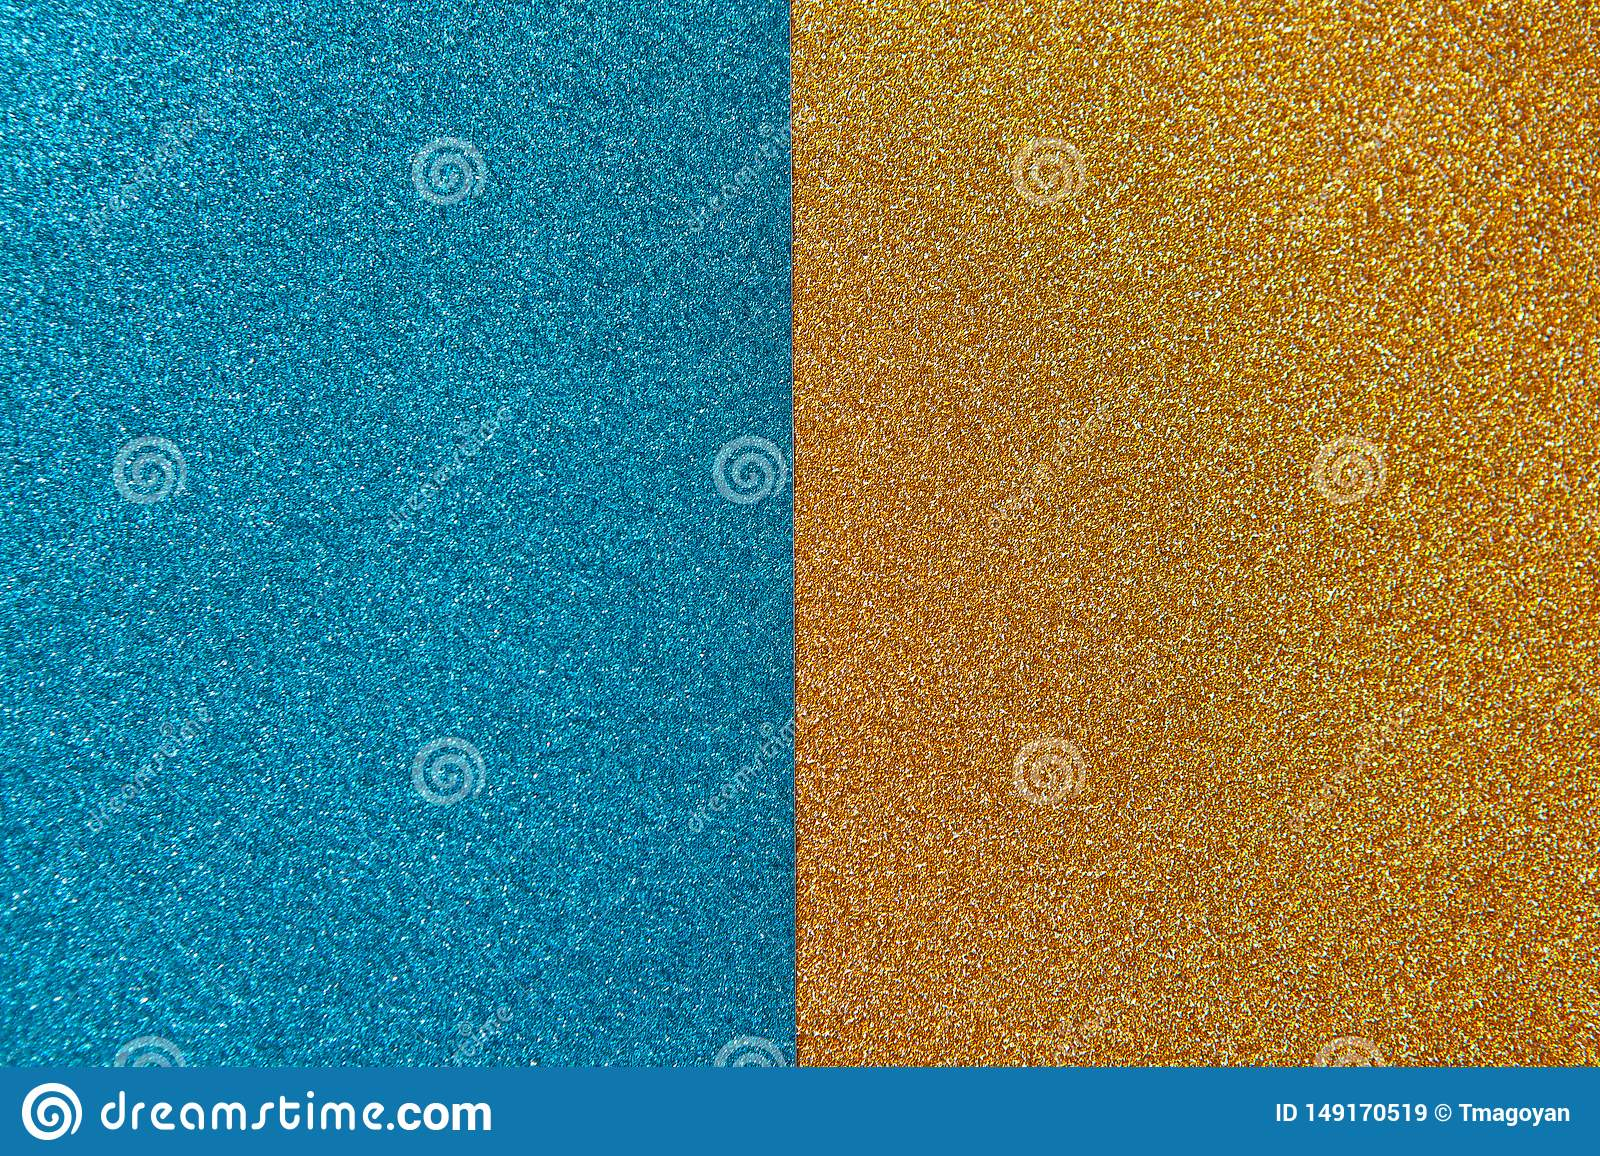 Bright festive brilliant background, consisting of two halves, blue and gold. Horizontal. Copy space for text.